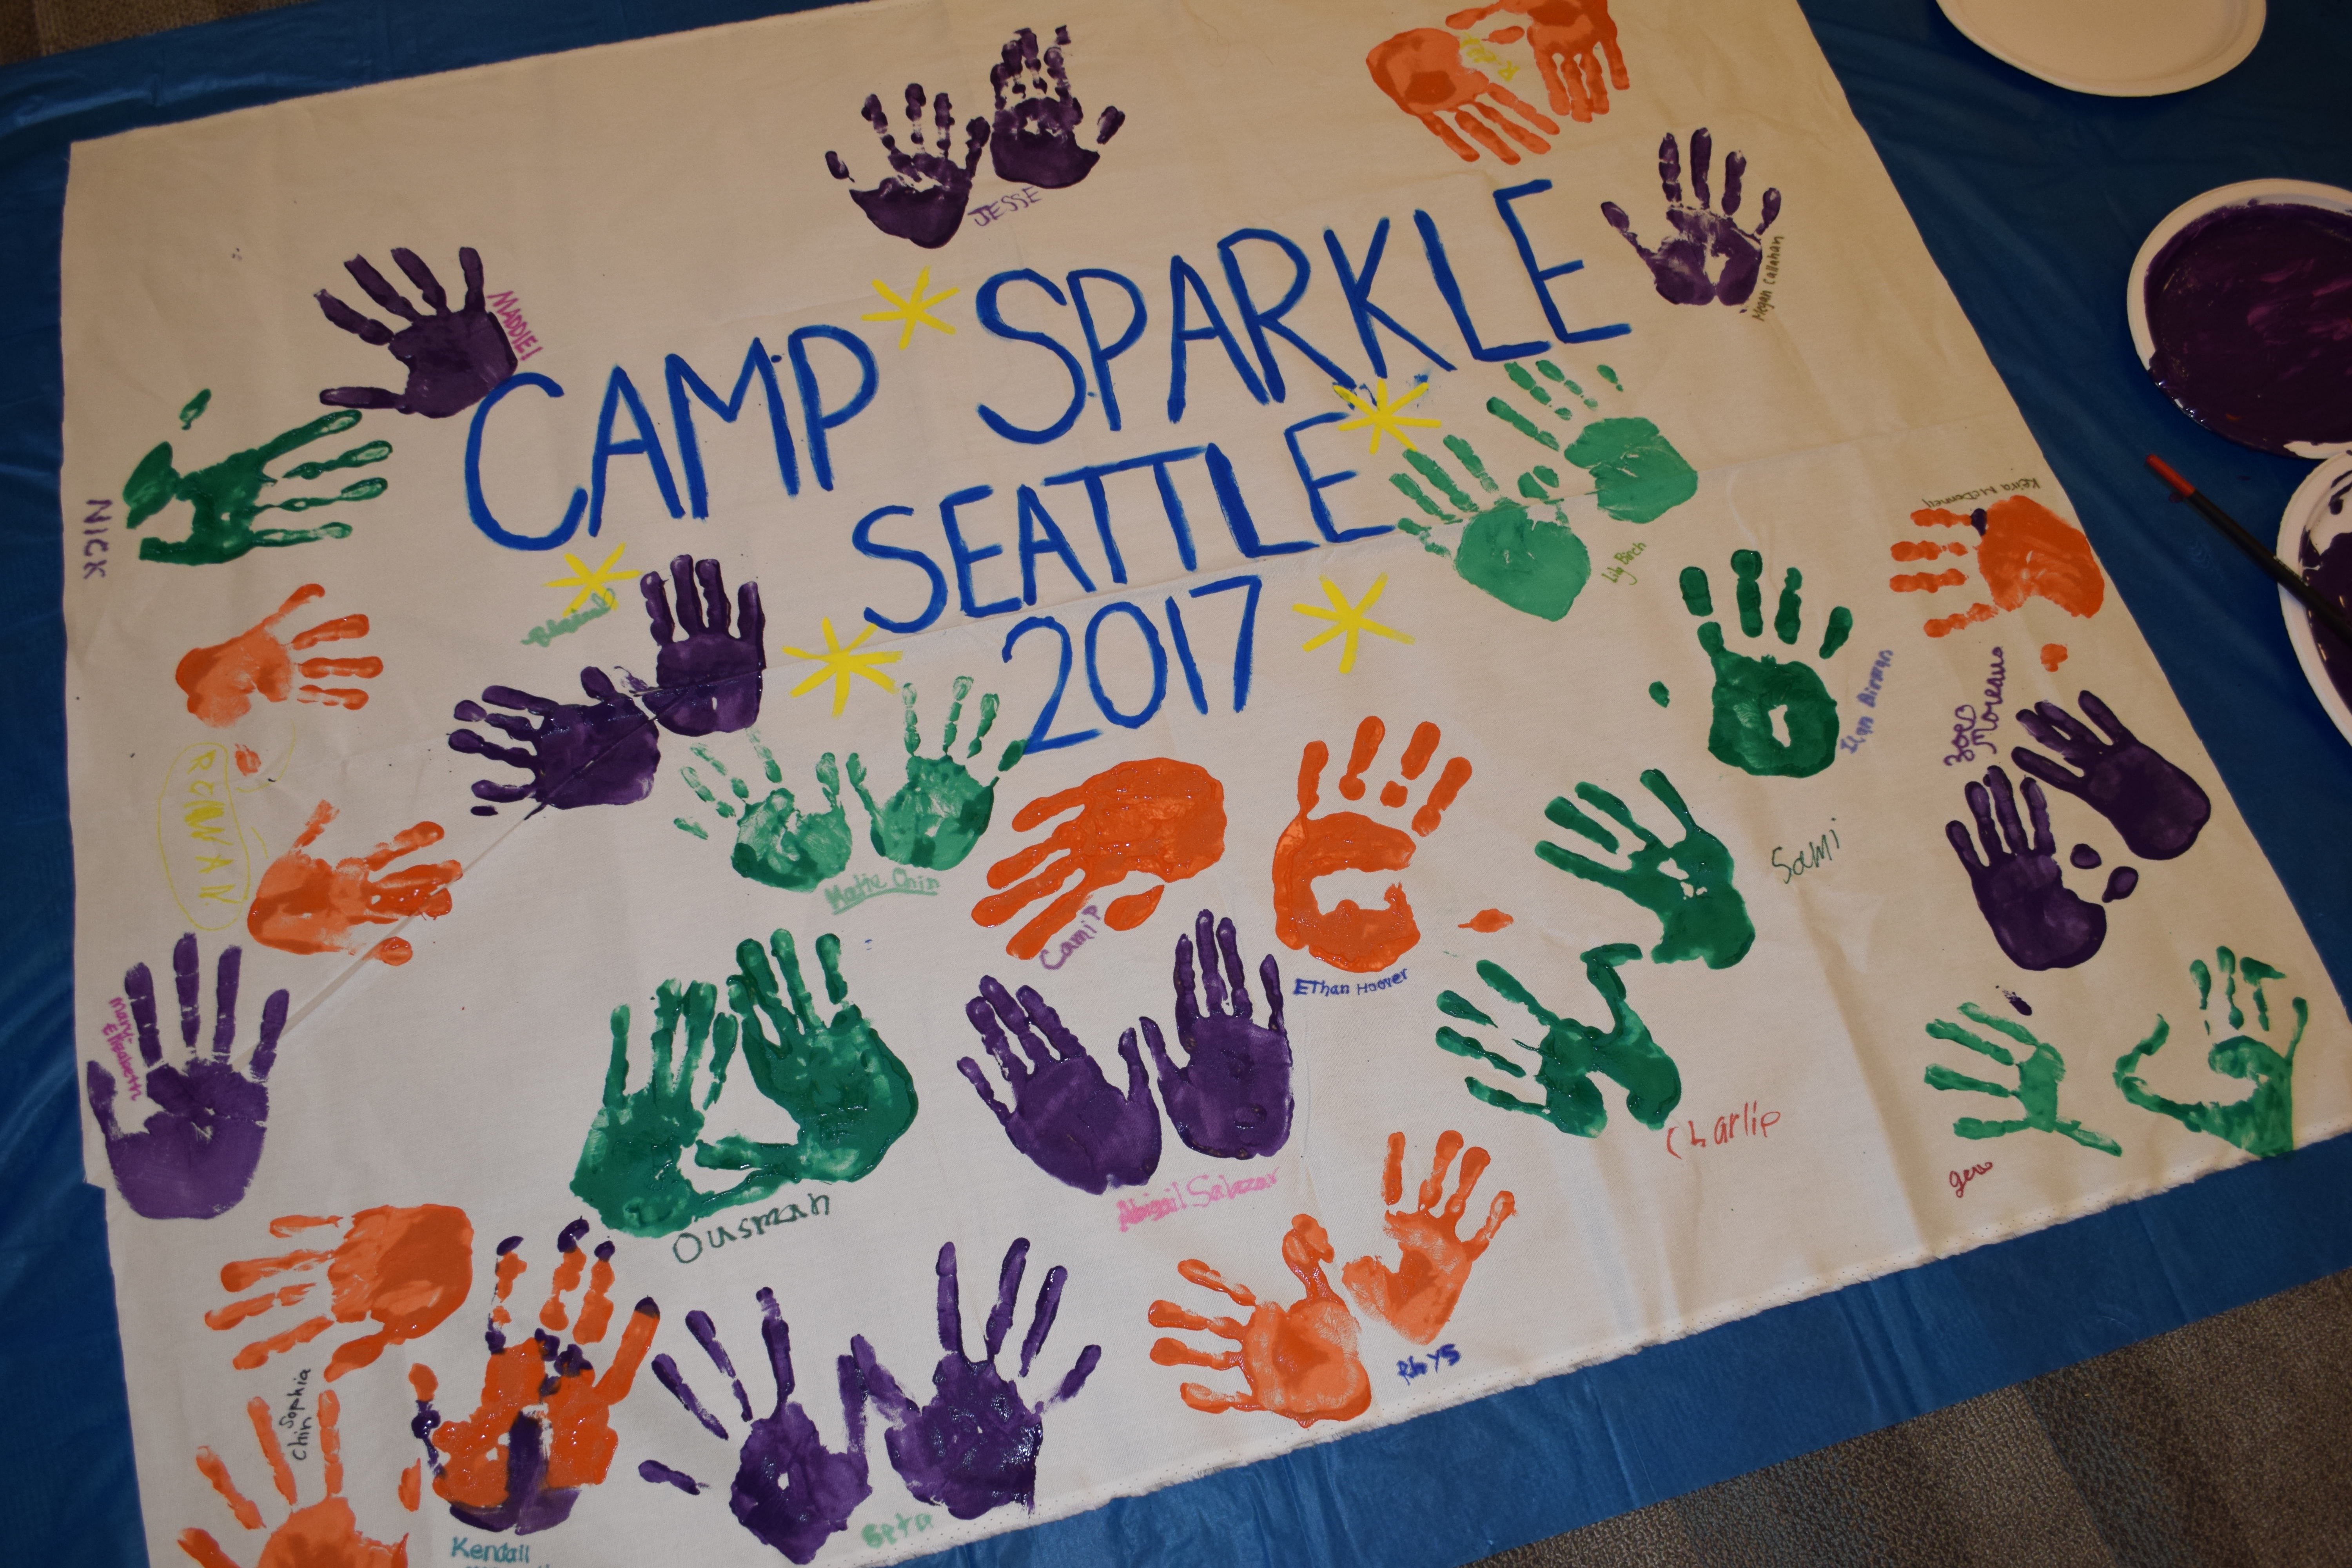 Camp Sparkle Seattle